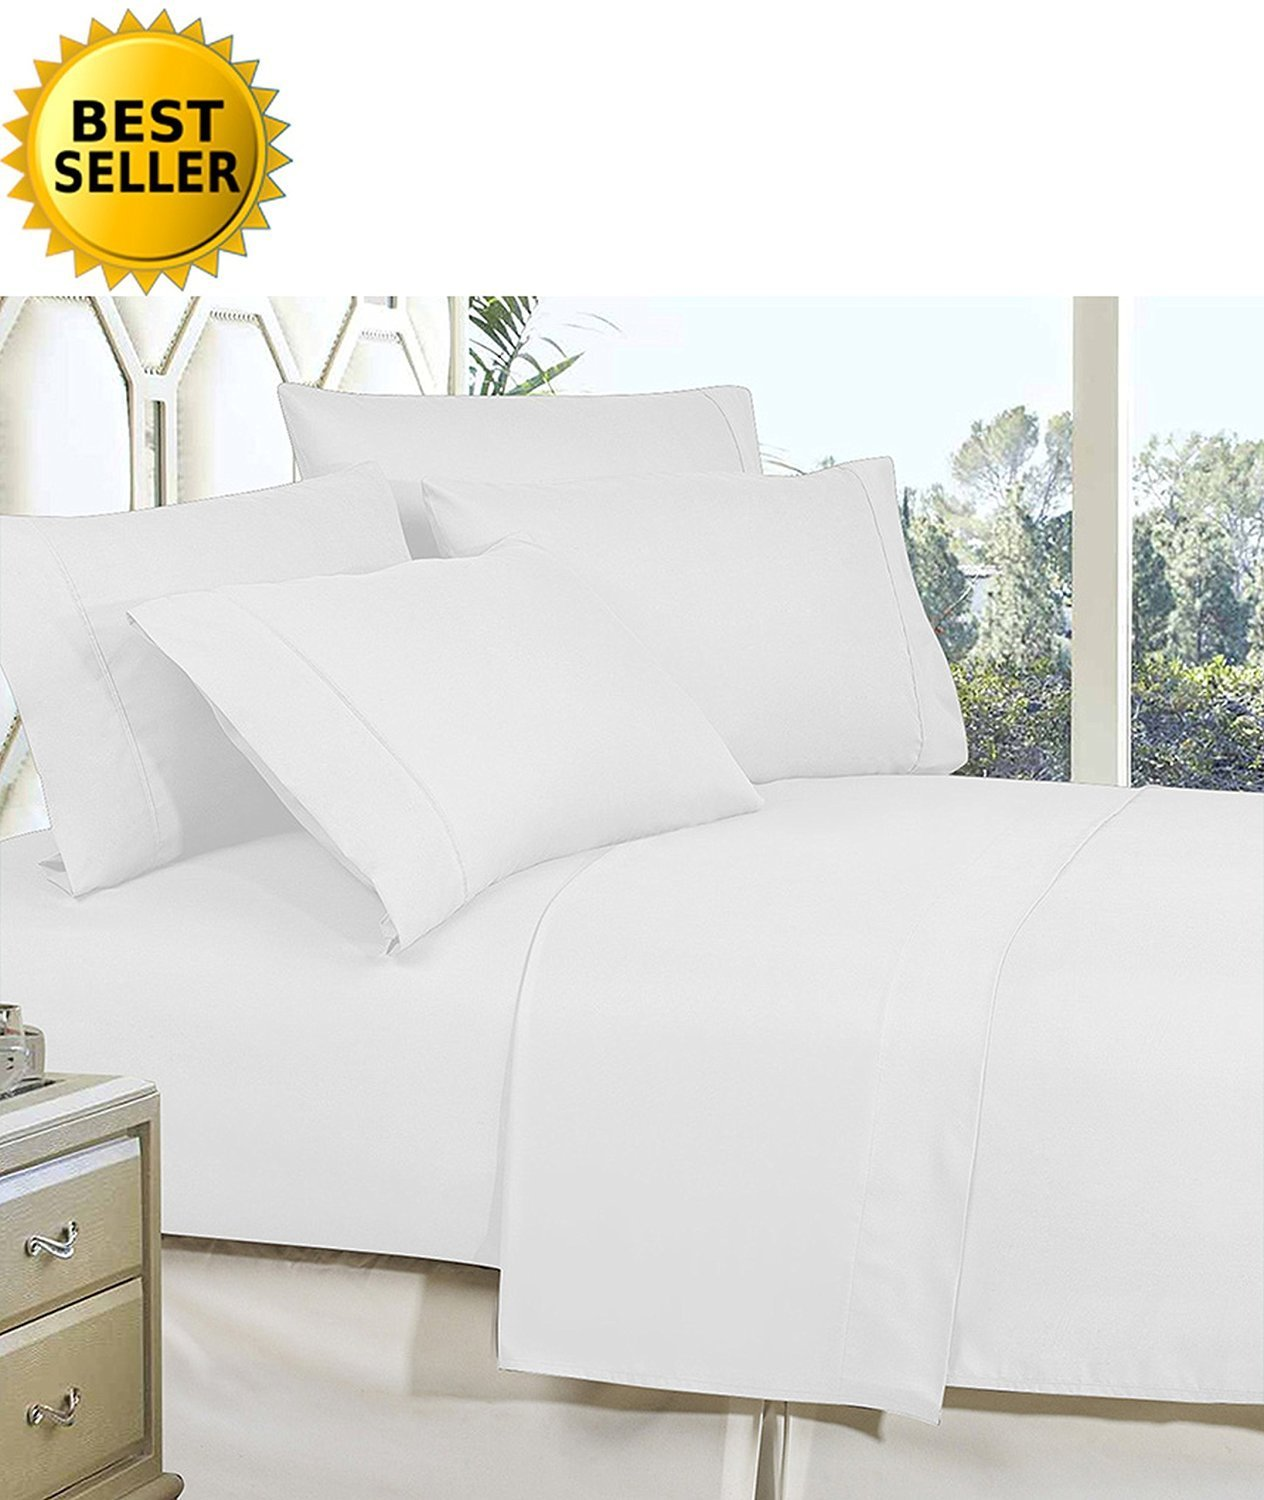 Best Softest Coziest Bed Sheets Ever! 1800 Thread Count Egyptian Quality Wrinkle-